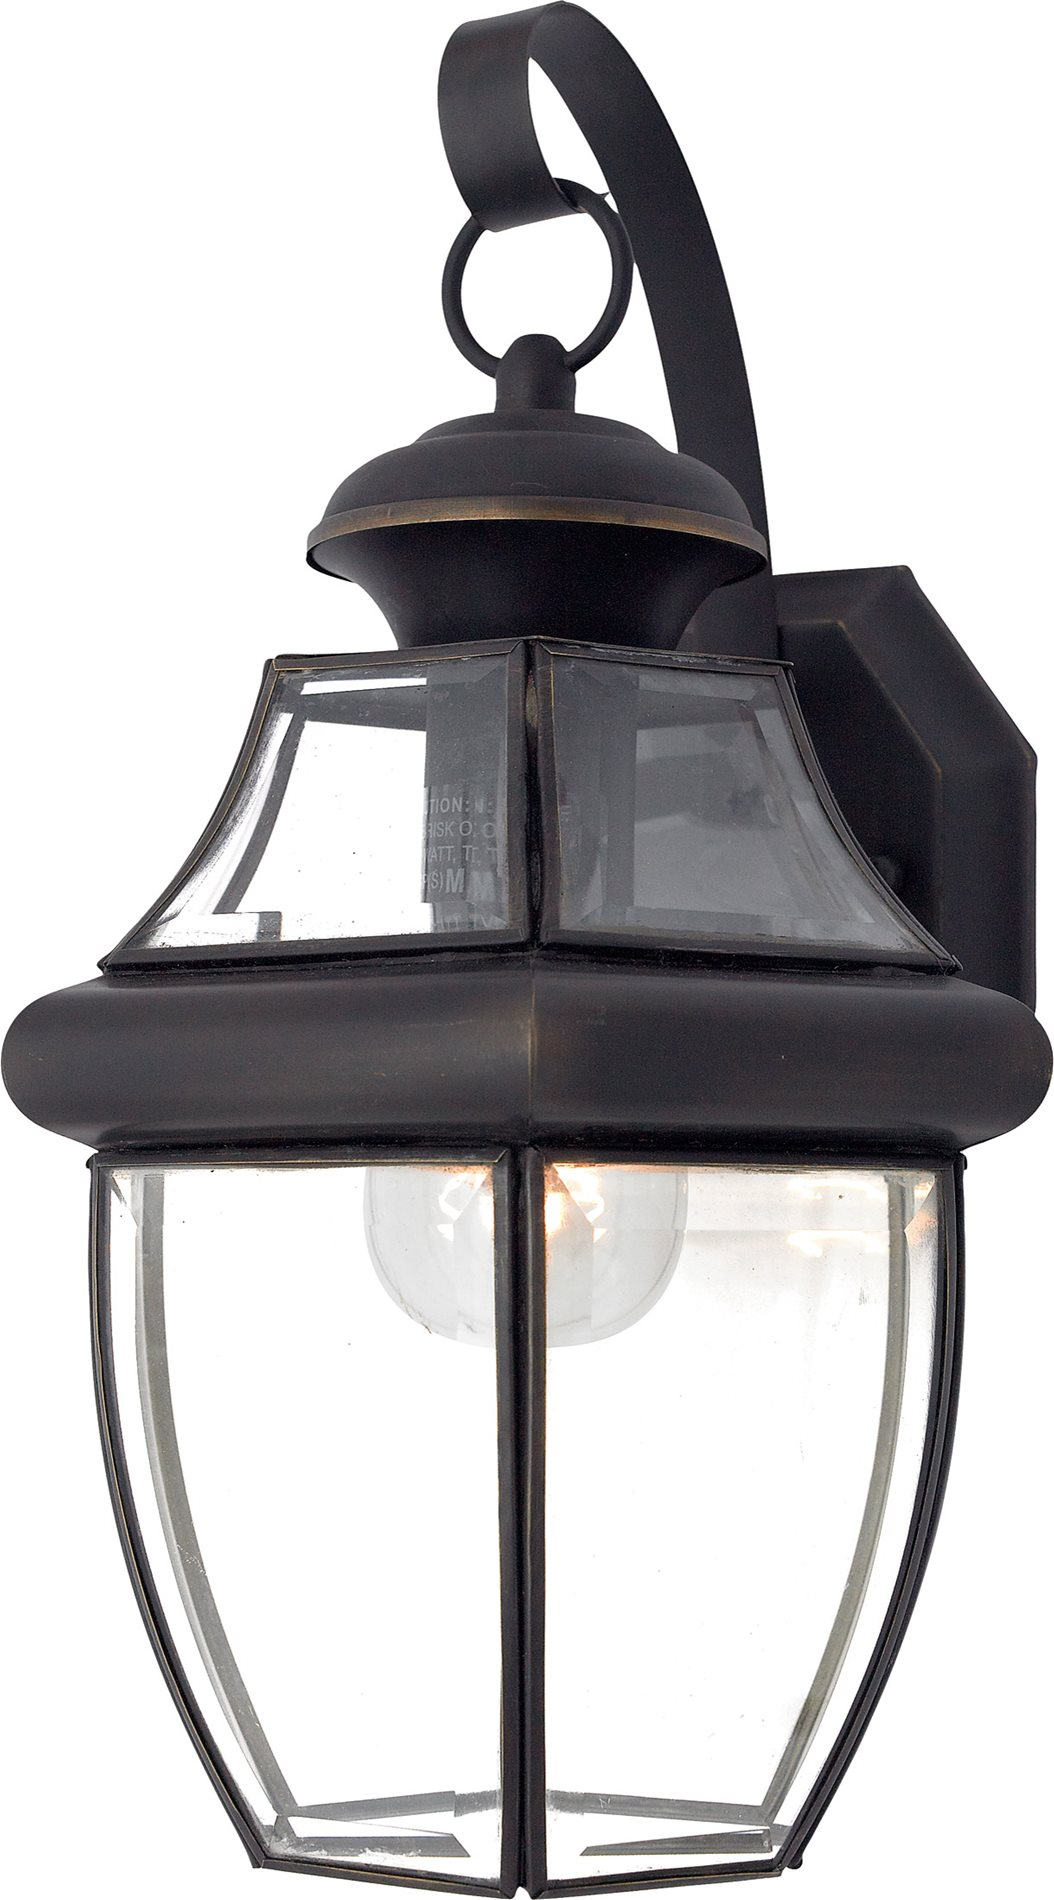 Quoizel ny8316z newbury traditional outdoor wall sconce qz for Outdoor home lighting fixtures